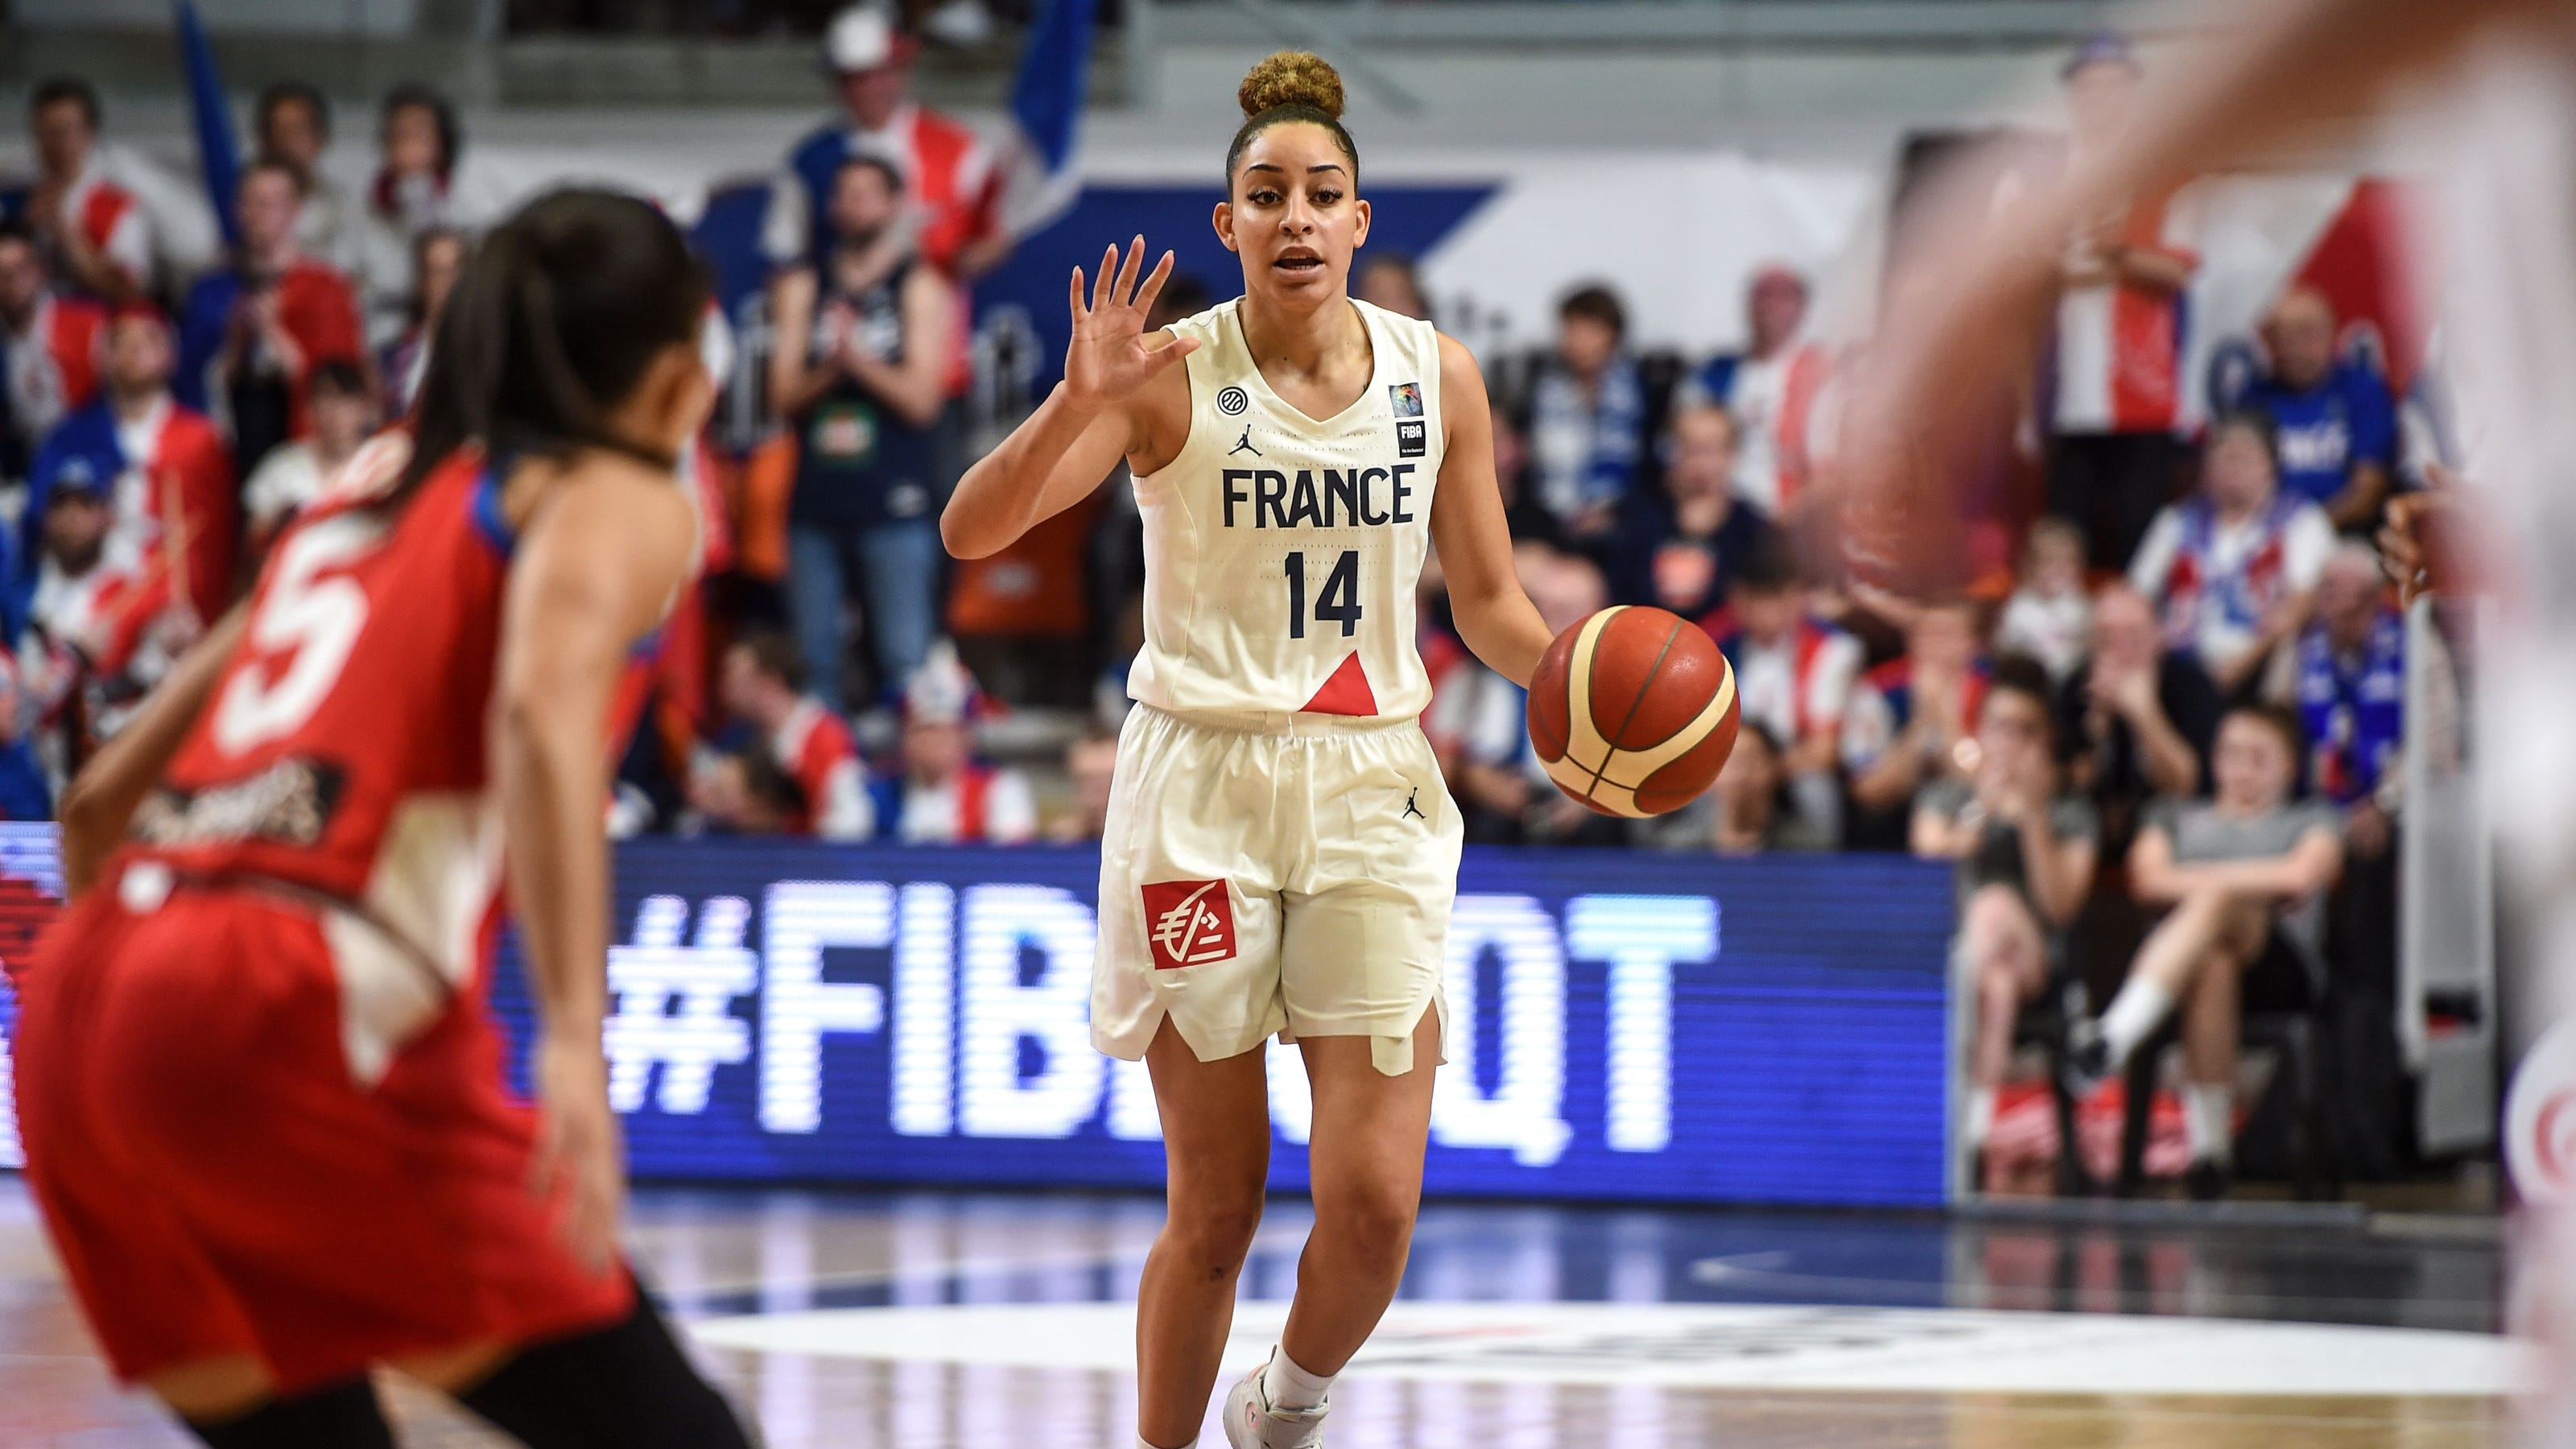 Phoenix Mercury Sign Guard Bria Hartley To Continue Roster Remake There's over 10,000 free games for every type of player and that number keeps growing! phoenix mercury sign guard bria hartley